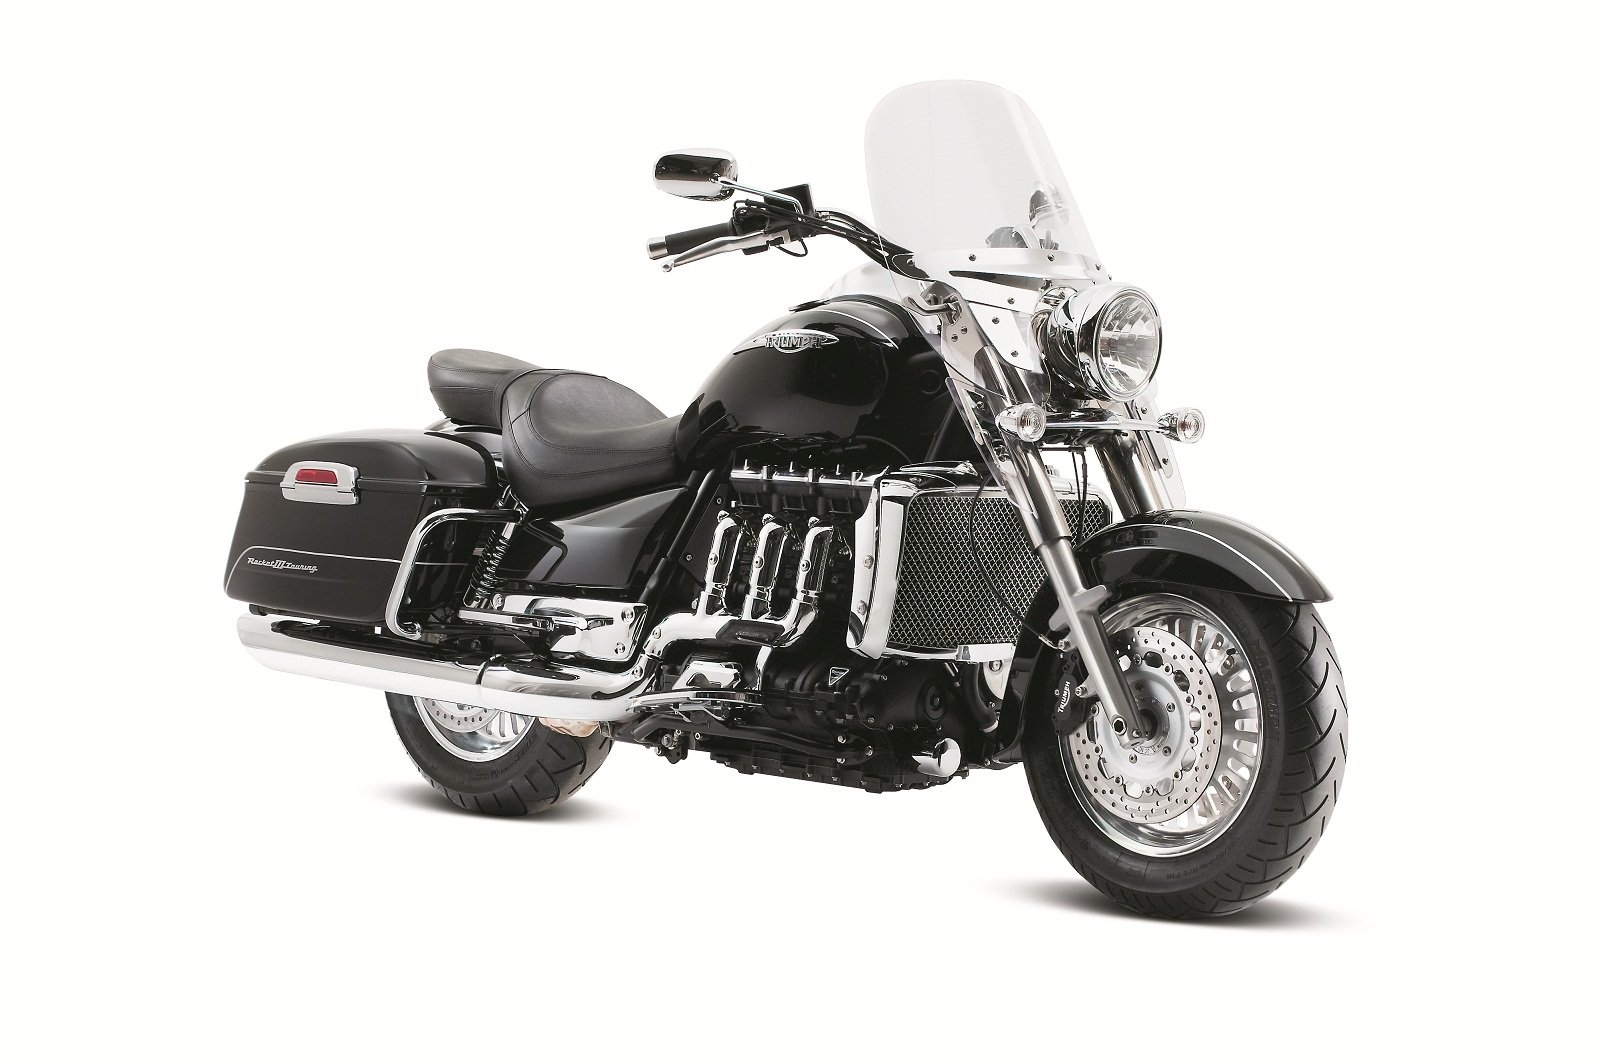 2012 triumph rocket iii touring review top speed. Black Bedroom Furniture Sets. Home Design Ideas